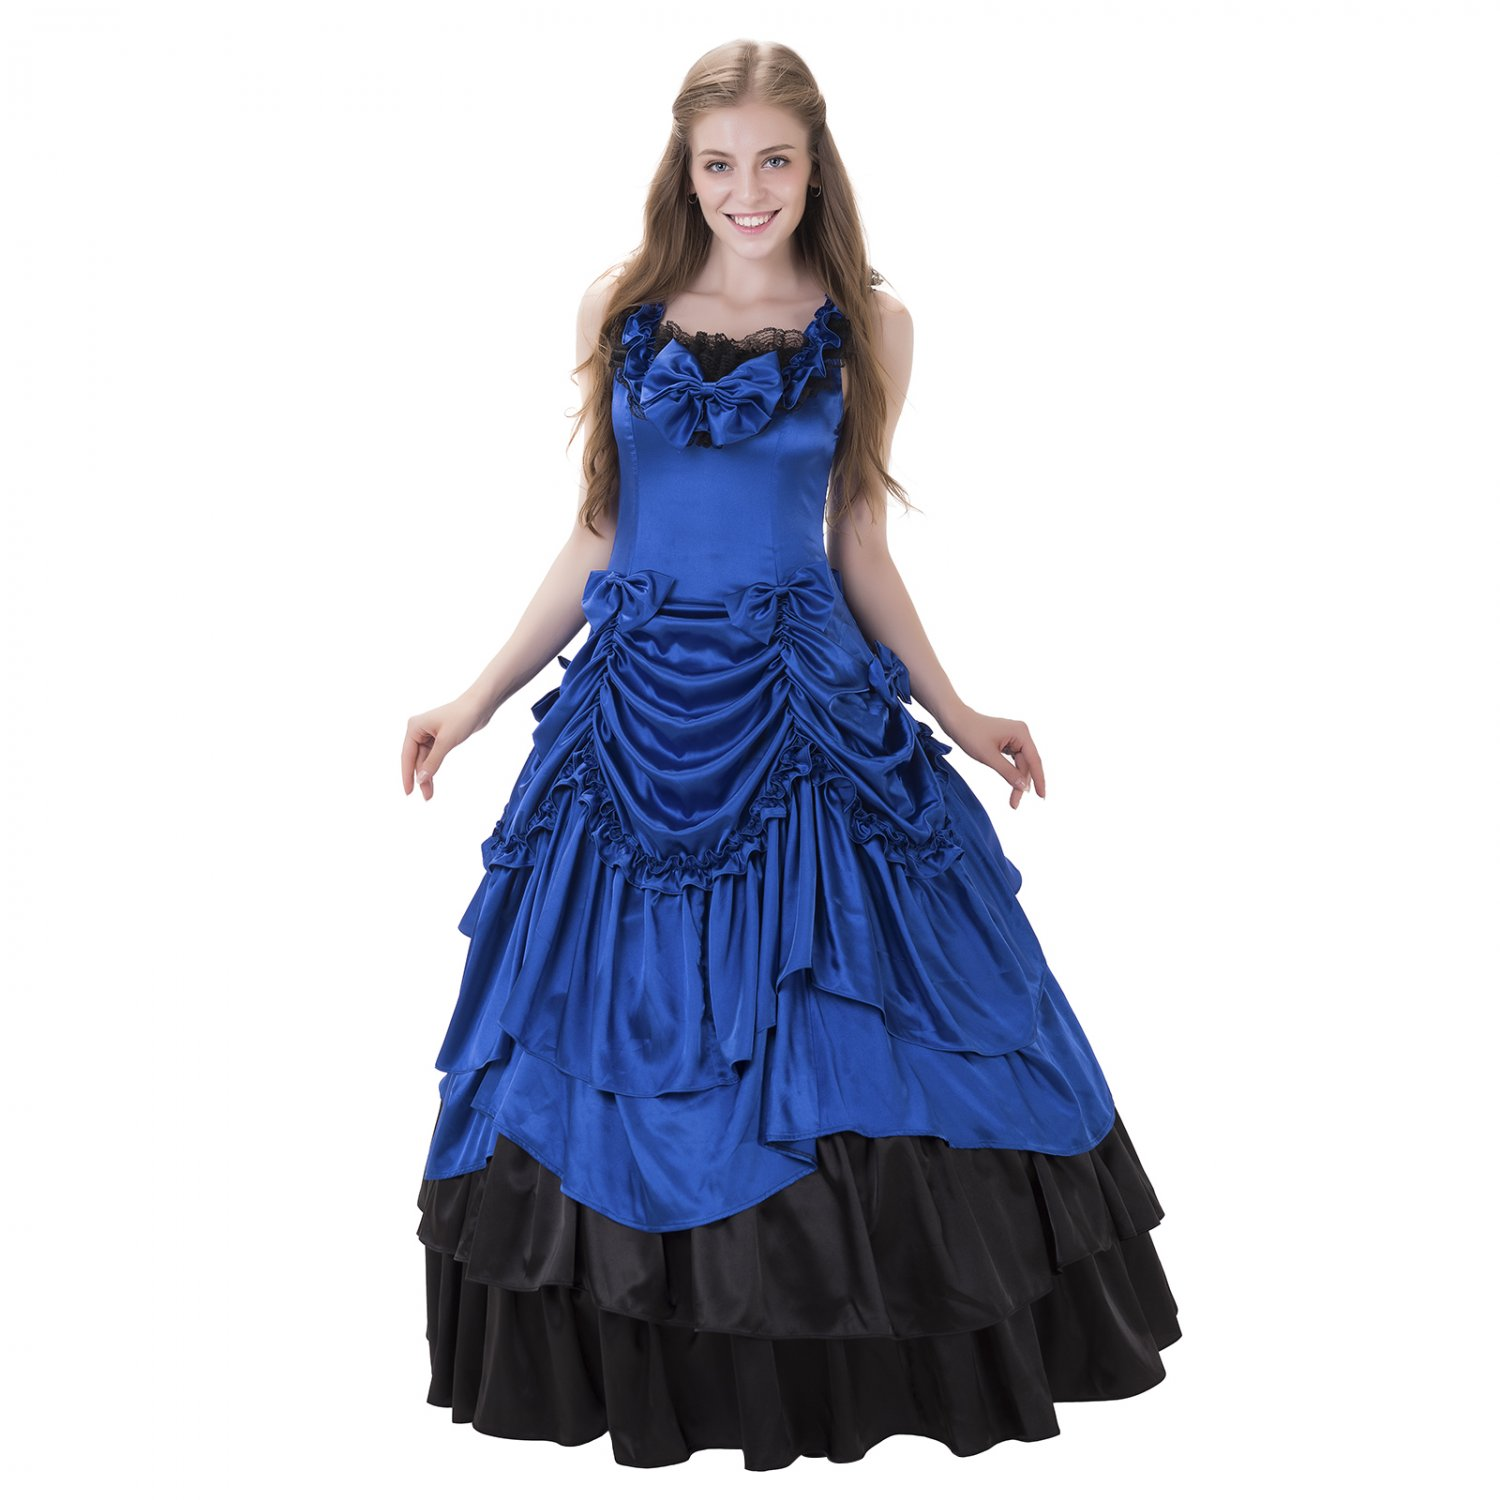 Cosplaydiy Medieval Dress Women's Evening Dress For Party Sapphire Blue Costume